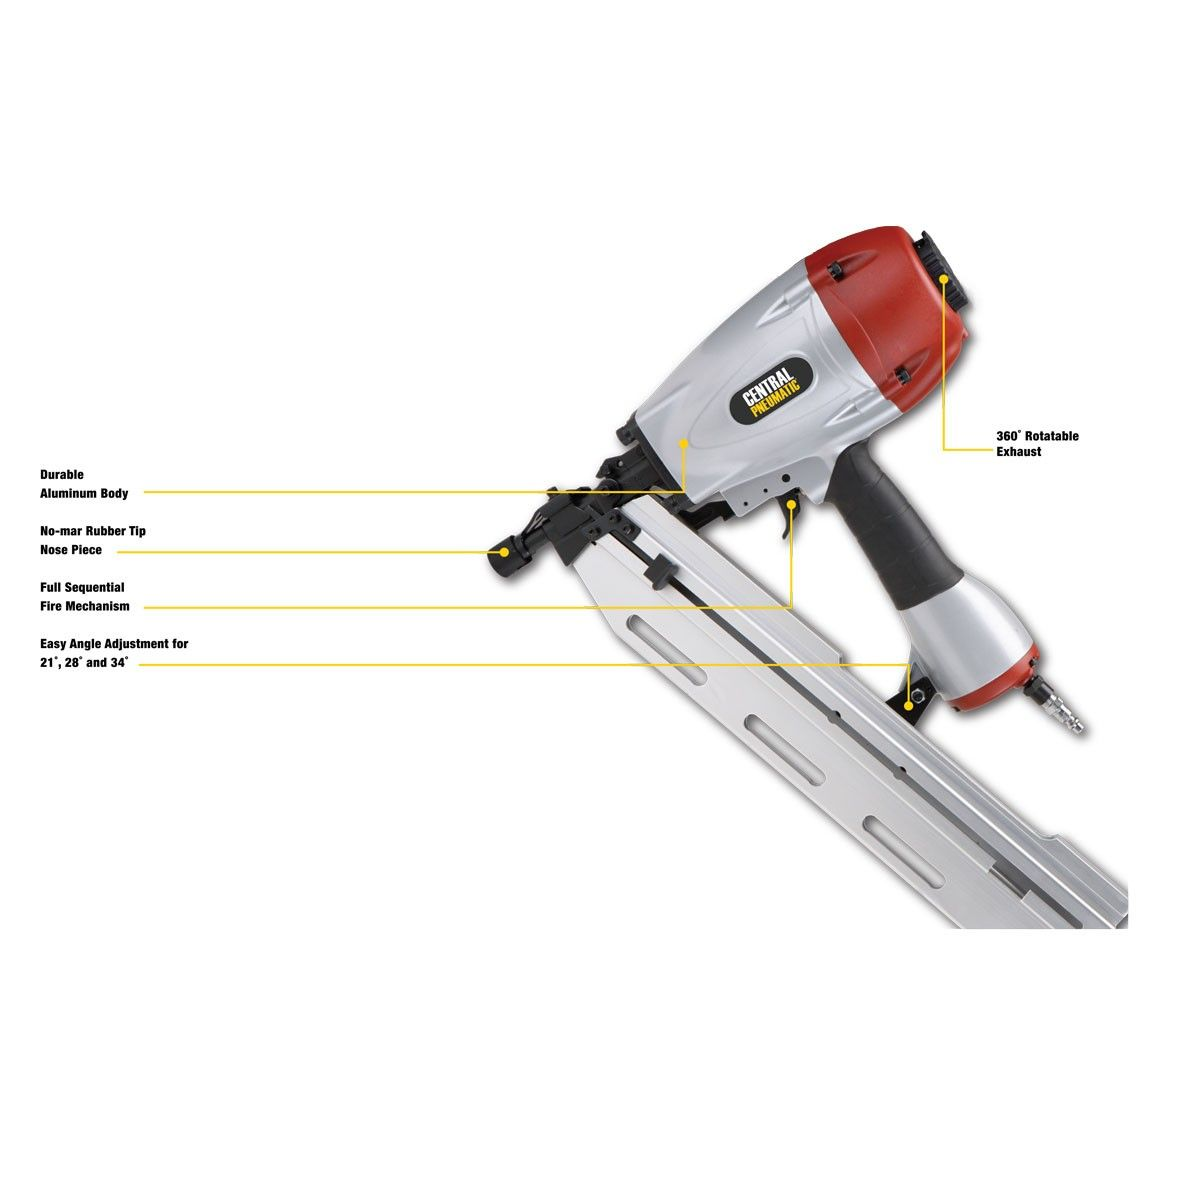 3-in-1 Framing Air Nailer | Tool List of Needs\Wants | Pinterest